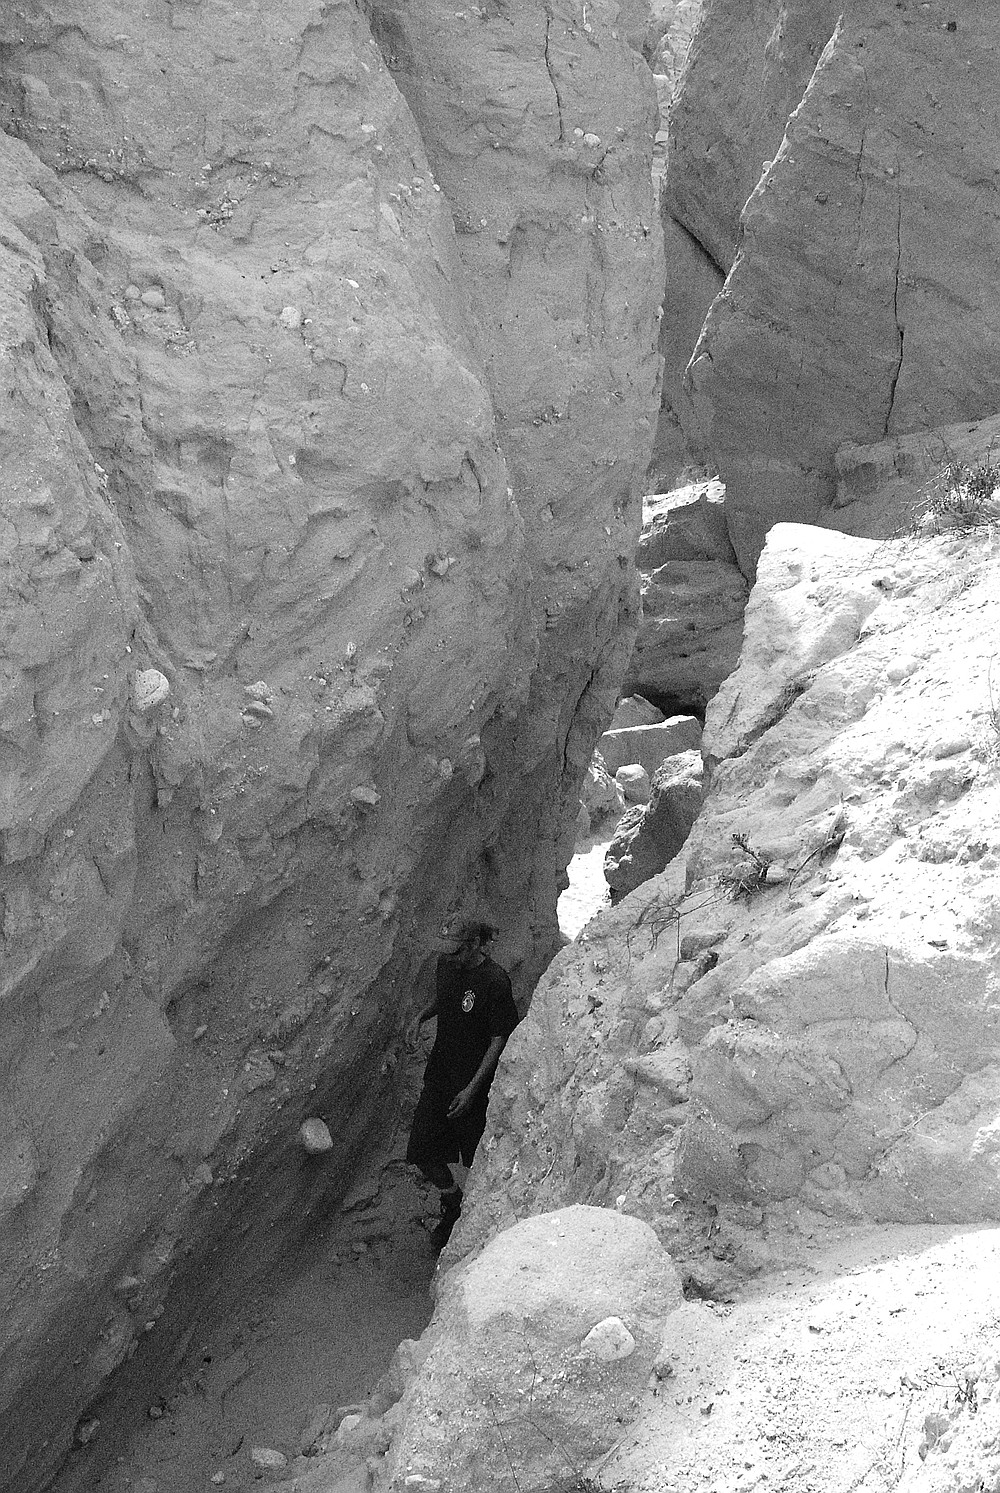 Slot canyon. At the mouth of the slot canyon, the hills had taken on a gothic appearance - ribs and spires and columns, buttresses, arches.